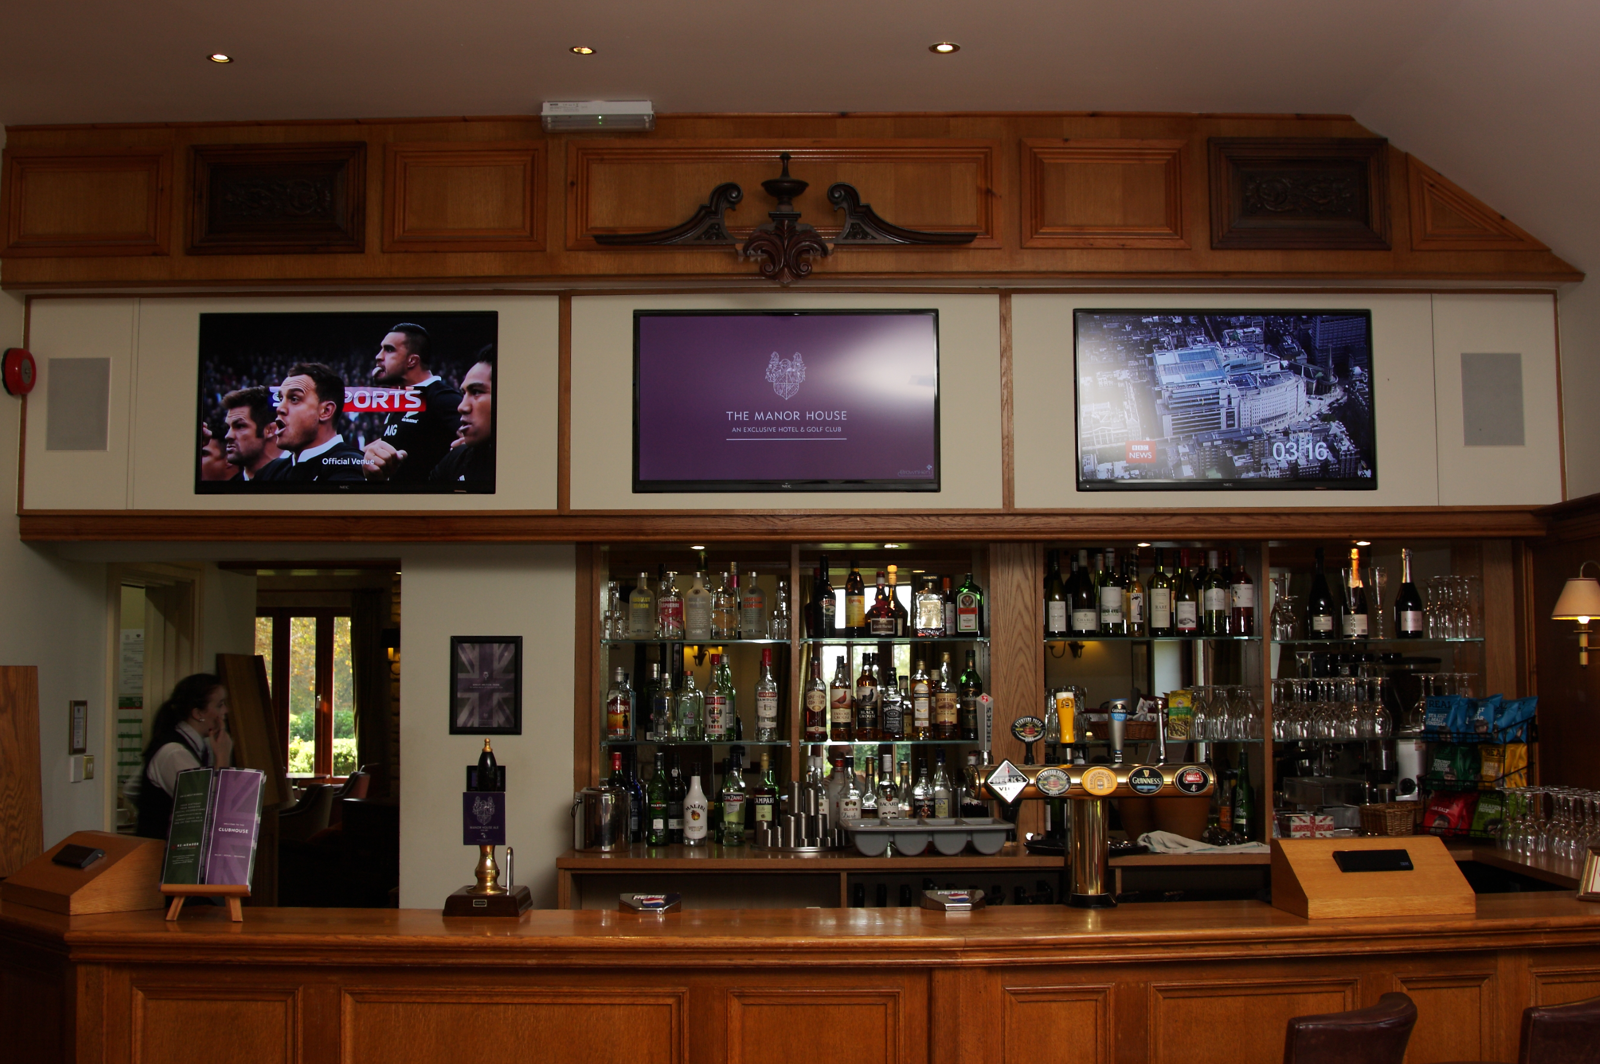 Multi screen solution in a bar